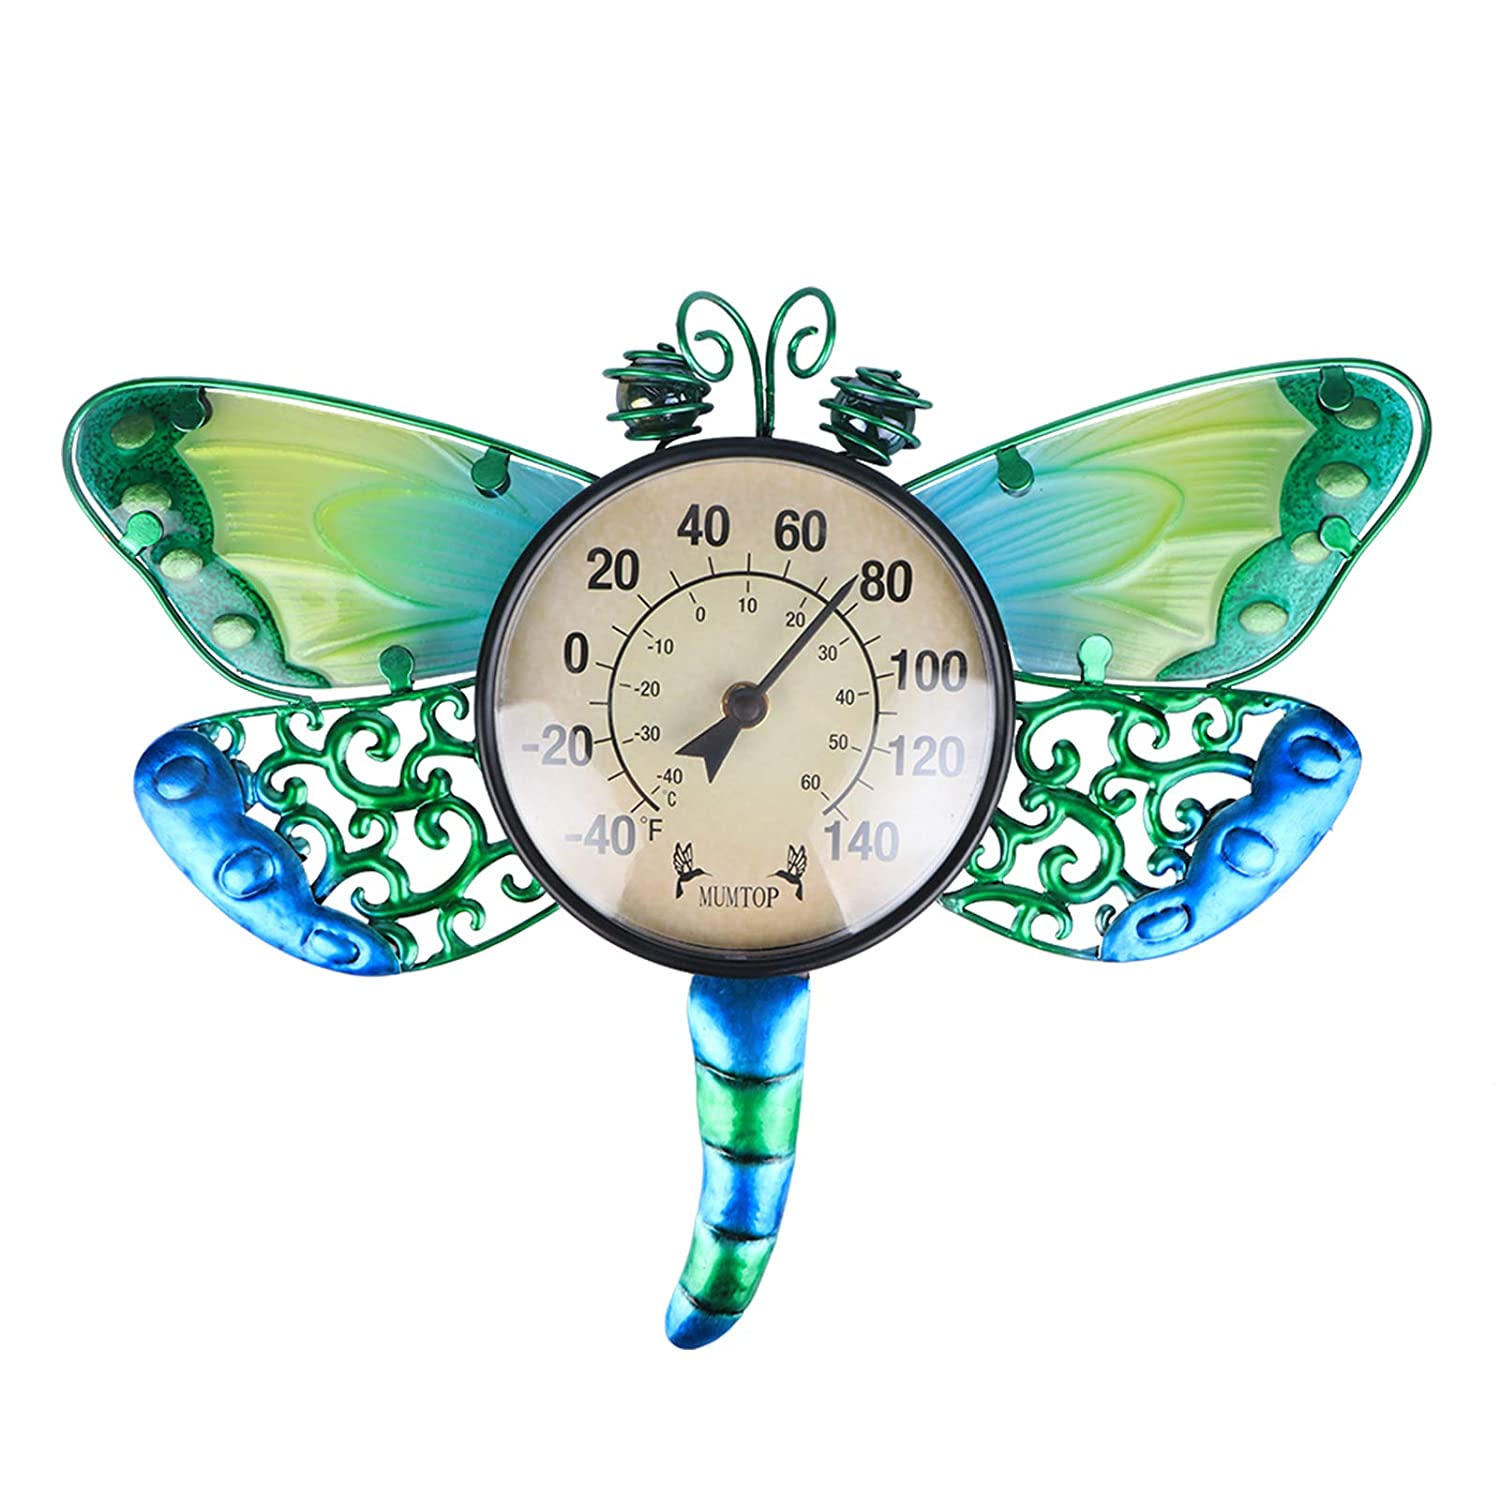 MUMTOP Indoor Outdoor Thermometer Waterproof Wall Thermometer Wireless Hygrometer Dragonfly, No Battery Needed Patio Hanging Decor